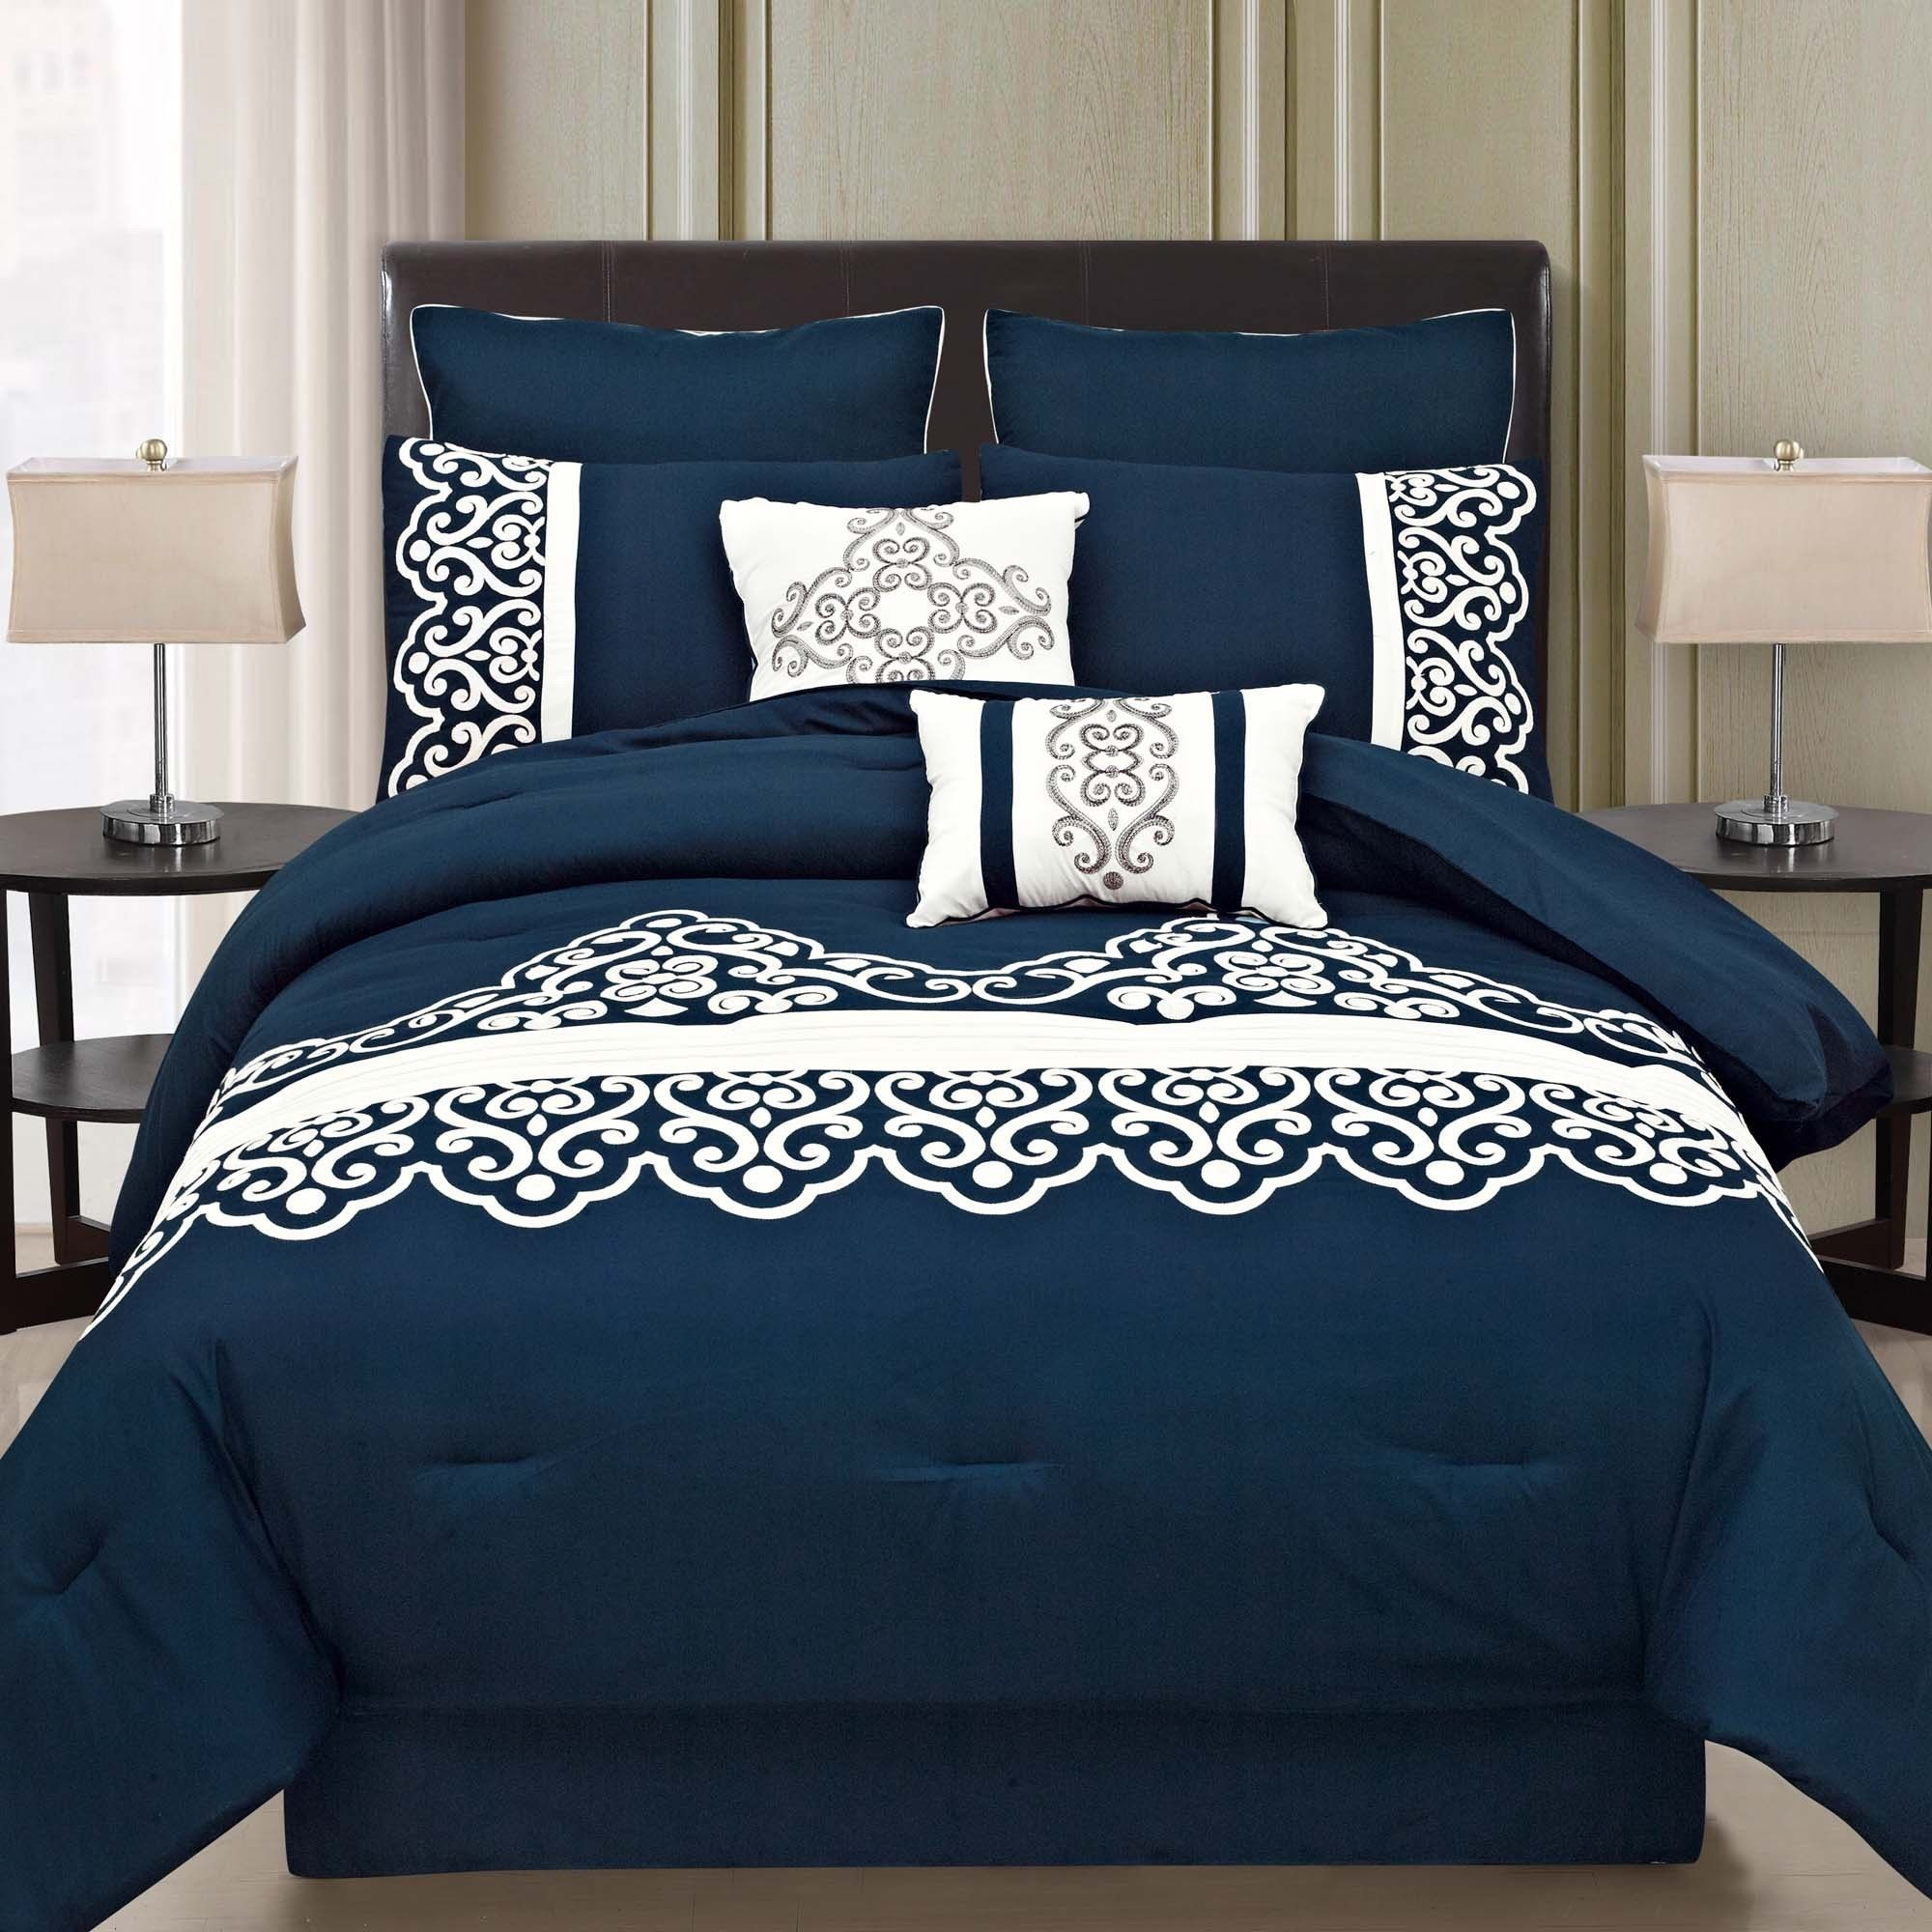 This royal blue bedding set features a white motif pattern on the